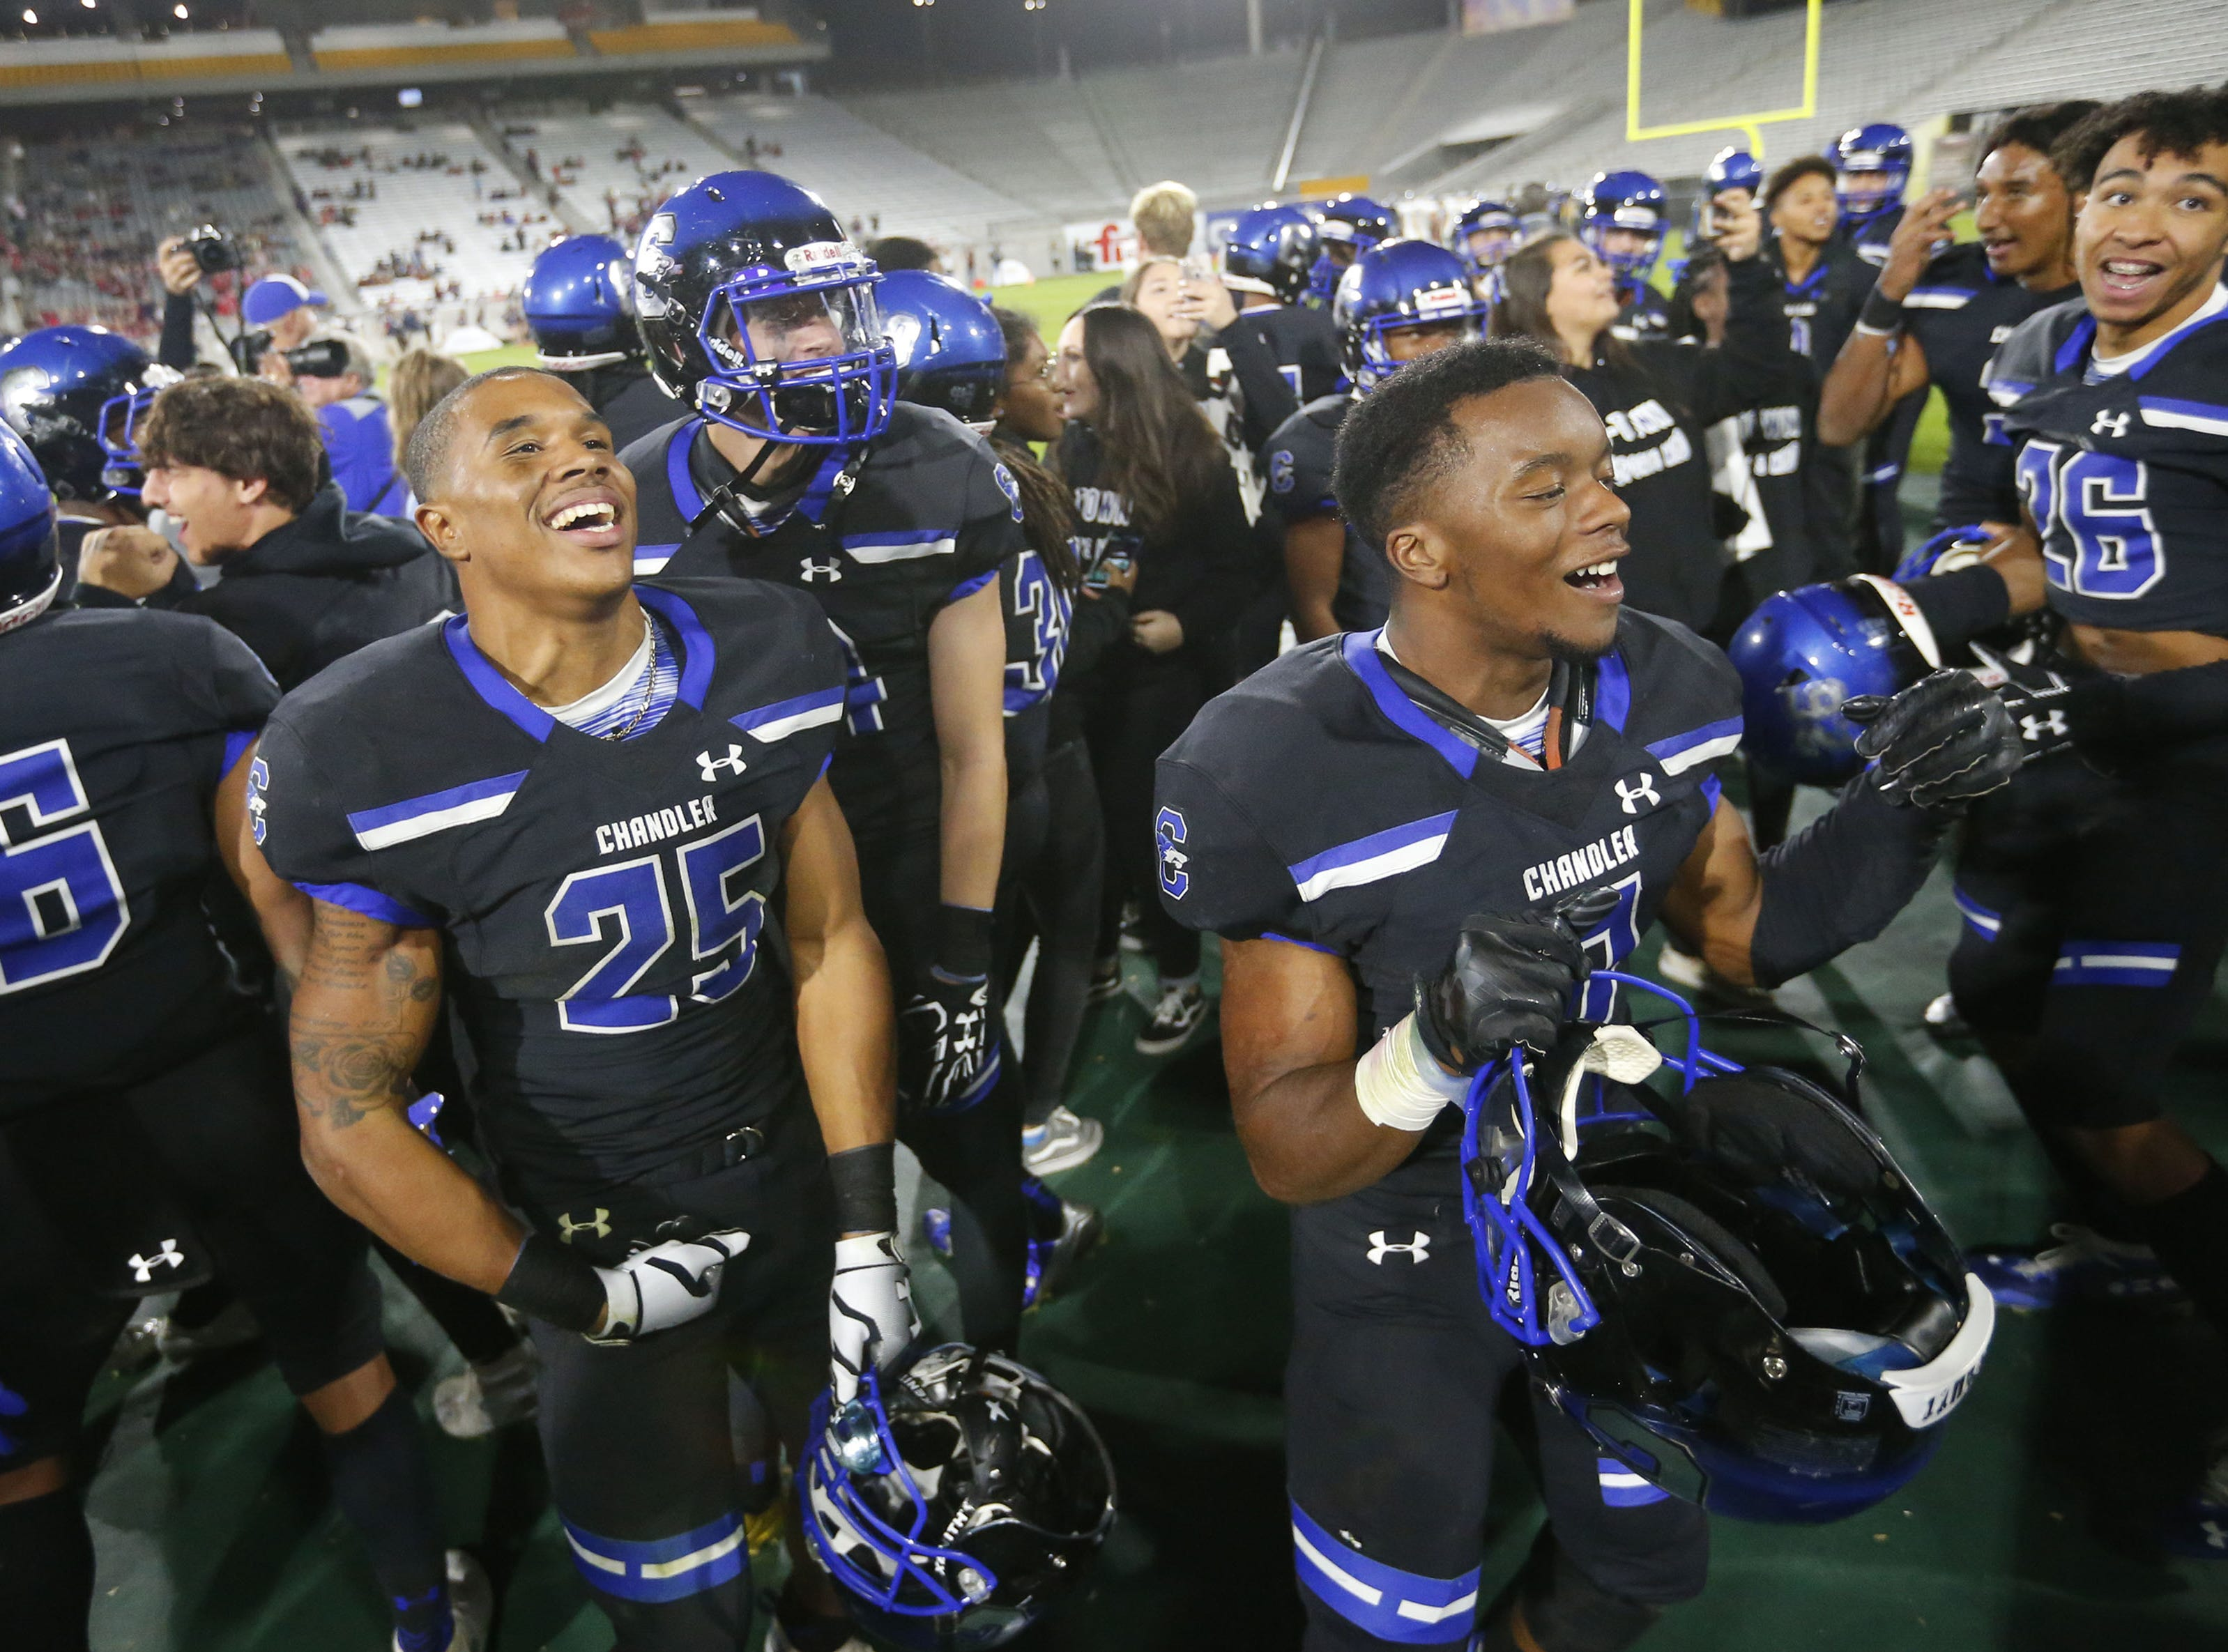 Chandler running back Decarlos Brooks (25) and his teammates celebrate their 65-28 win against Perry in the 6A state football championship game at Sun Devil Stadium December 1, 2018. #azhsfb